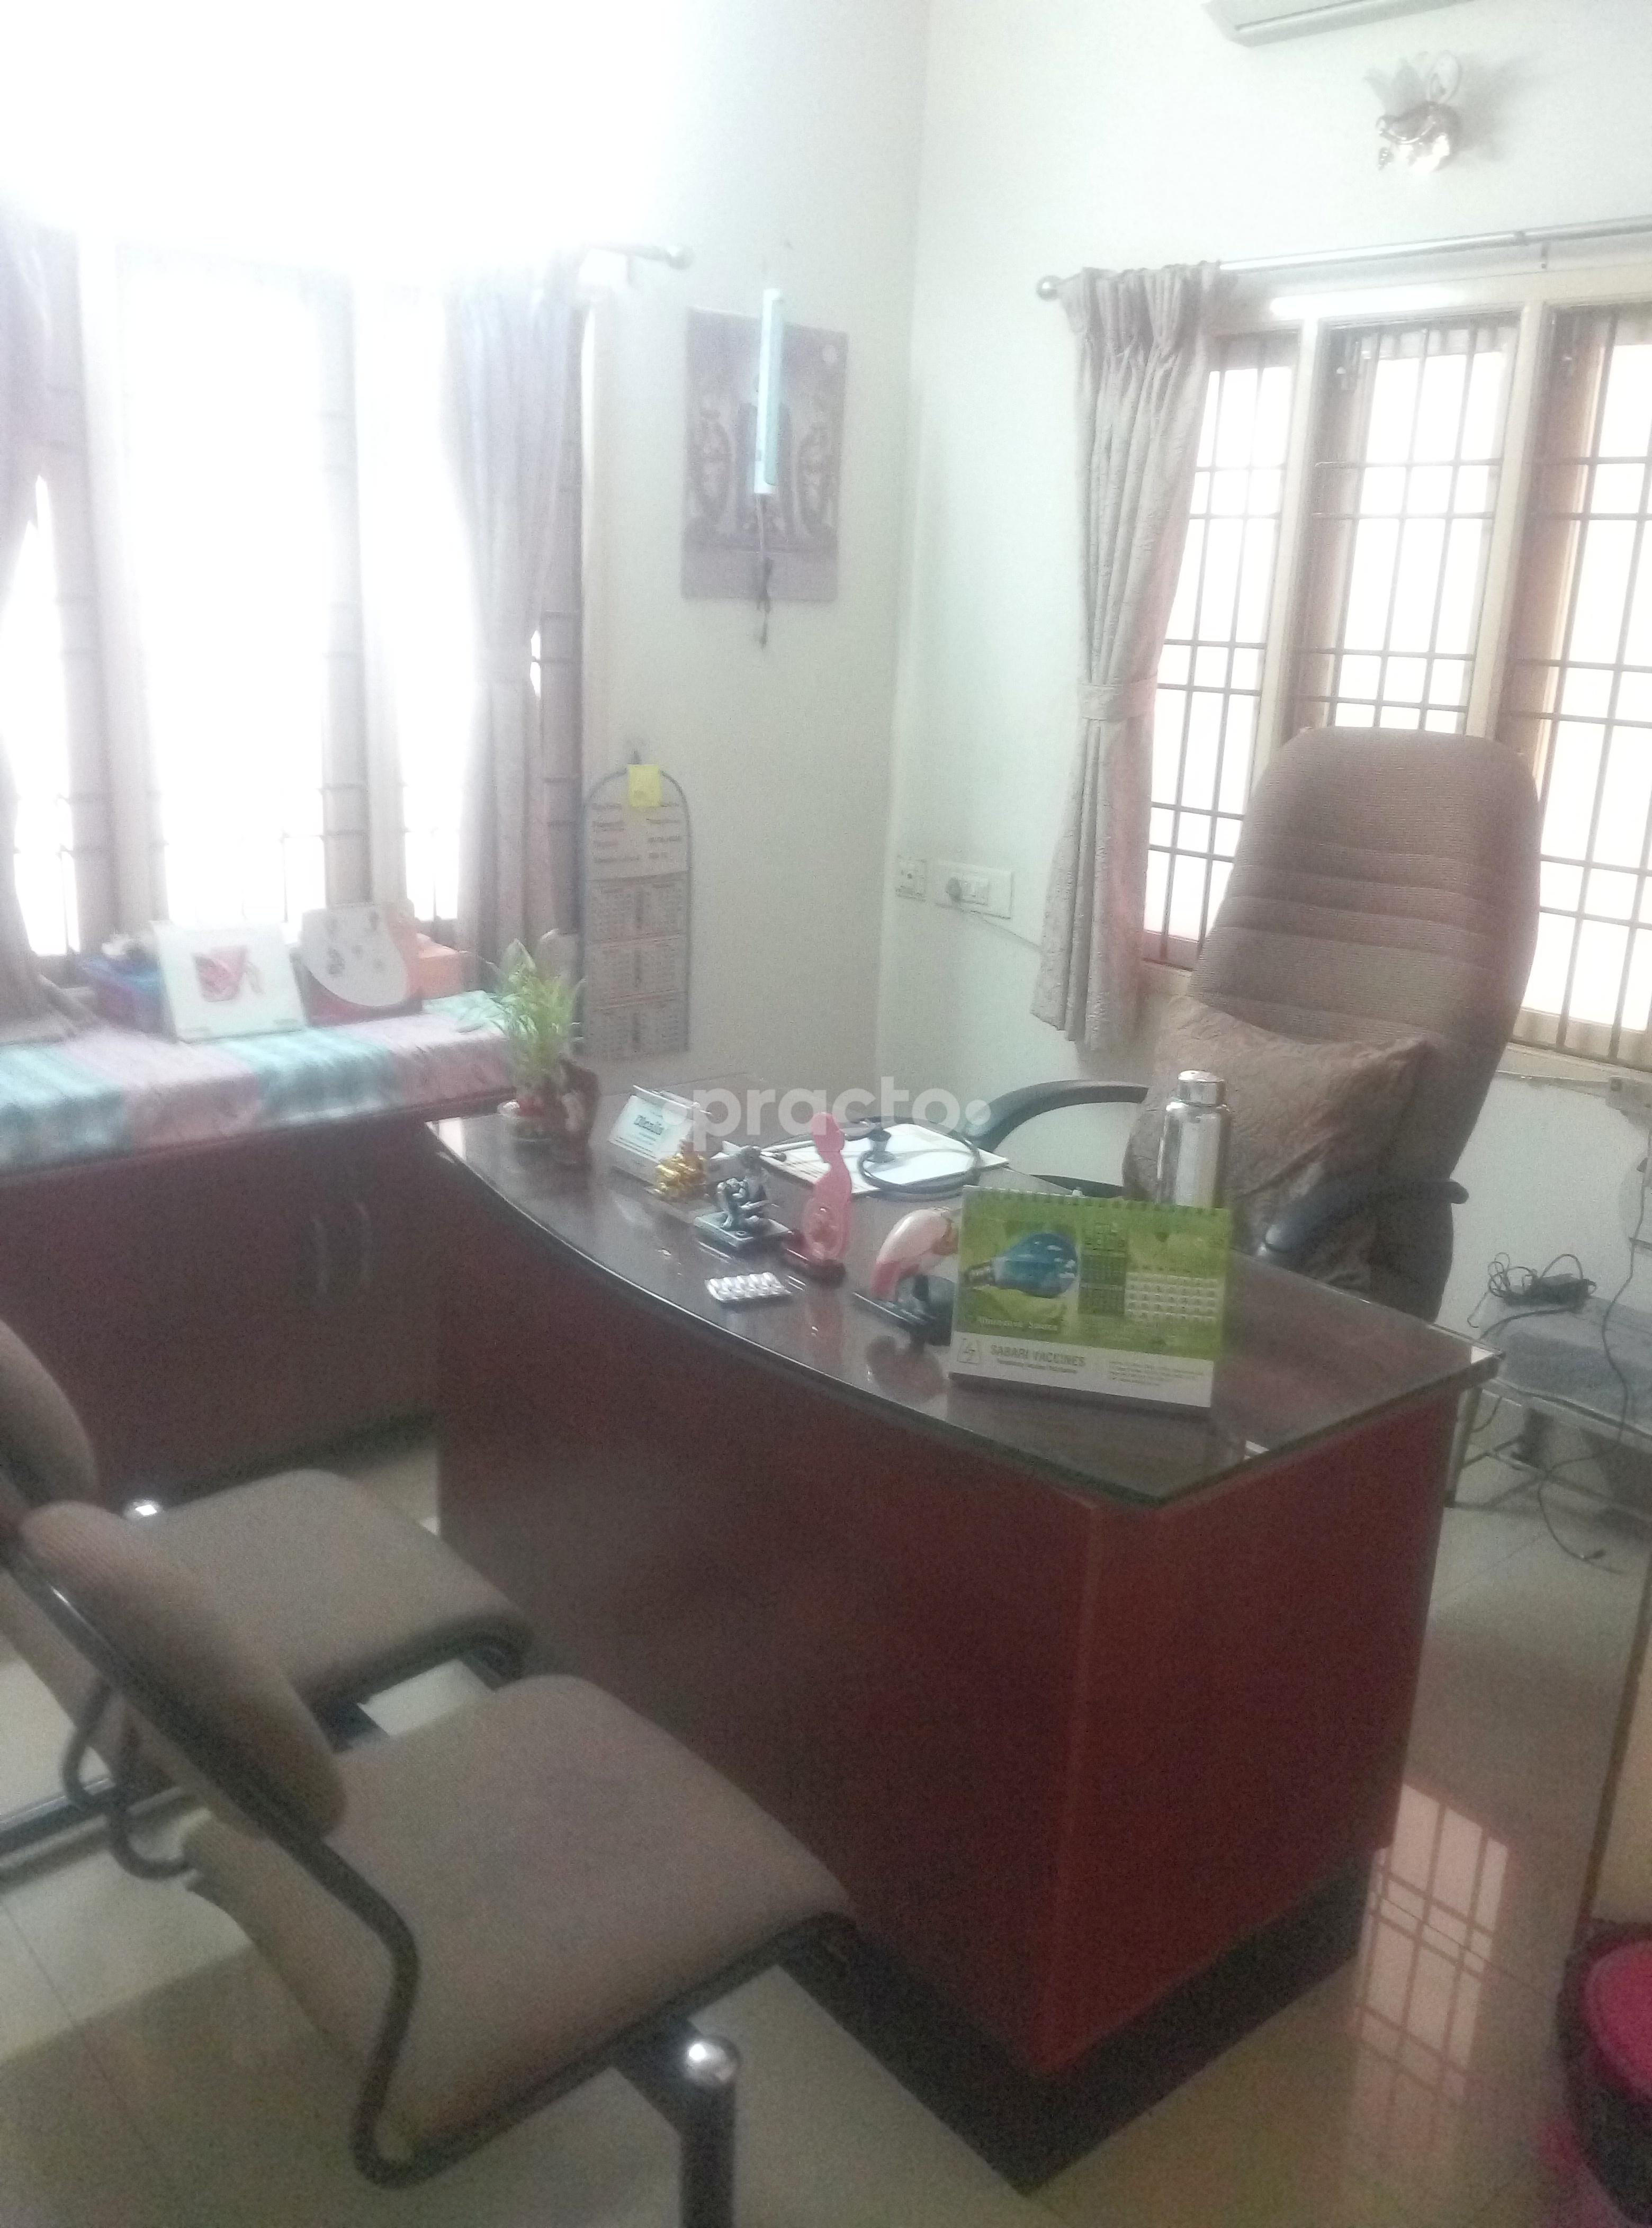 Gynecologist Obstetricians In Vadapalani, Chennai - Instant